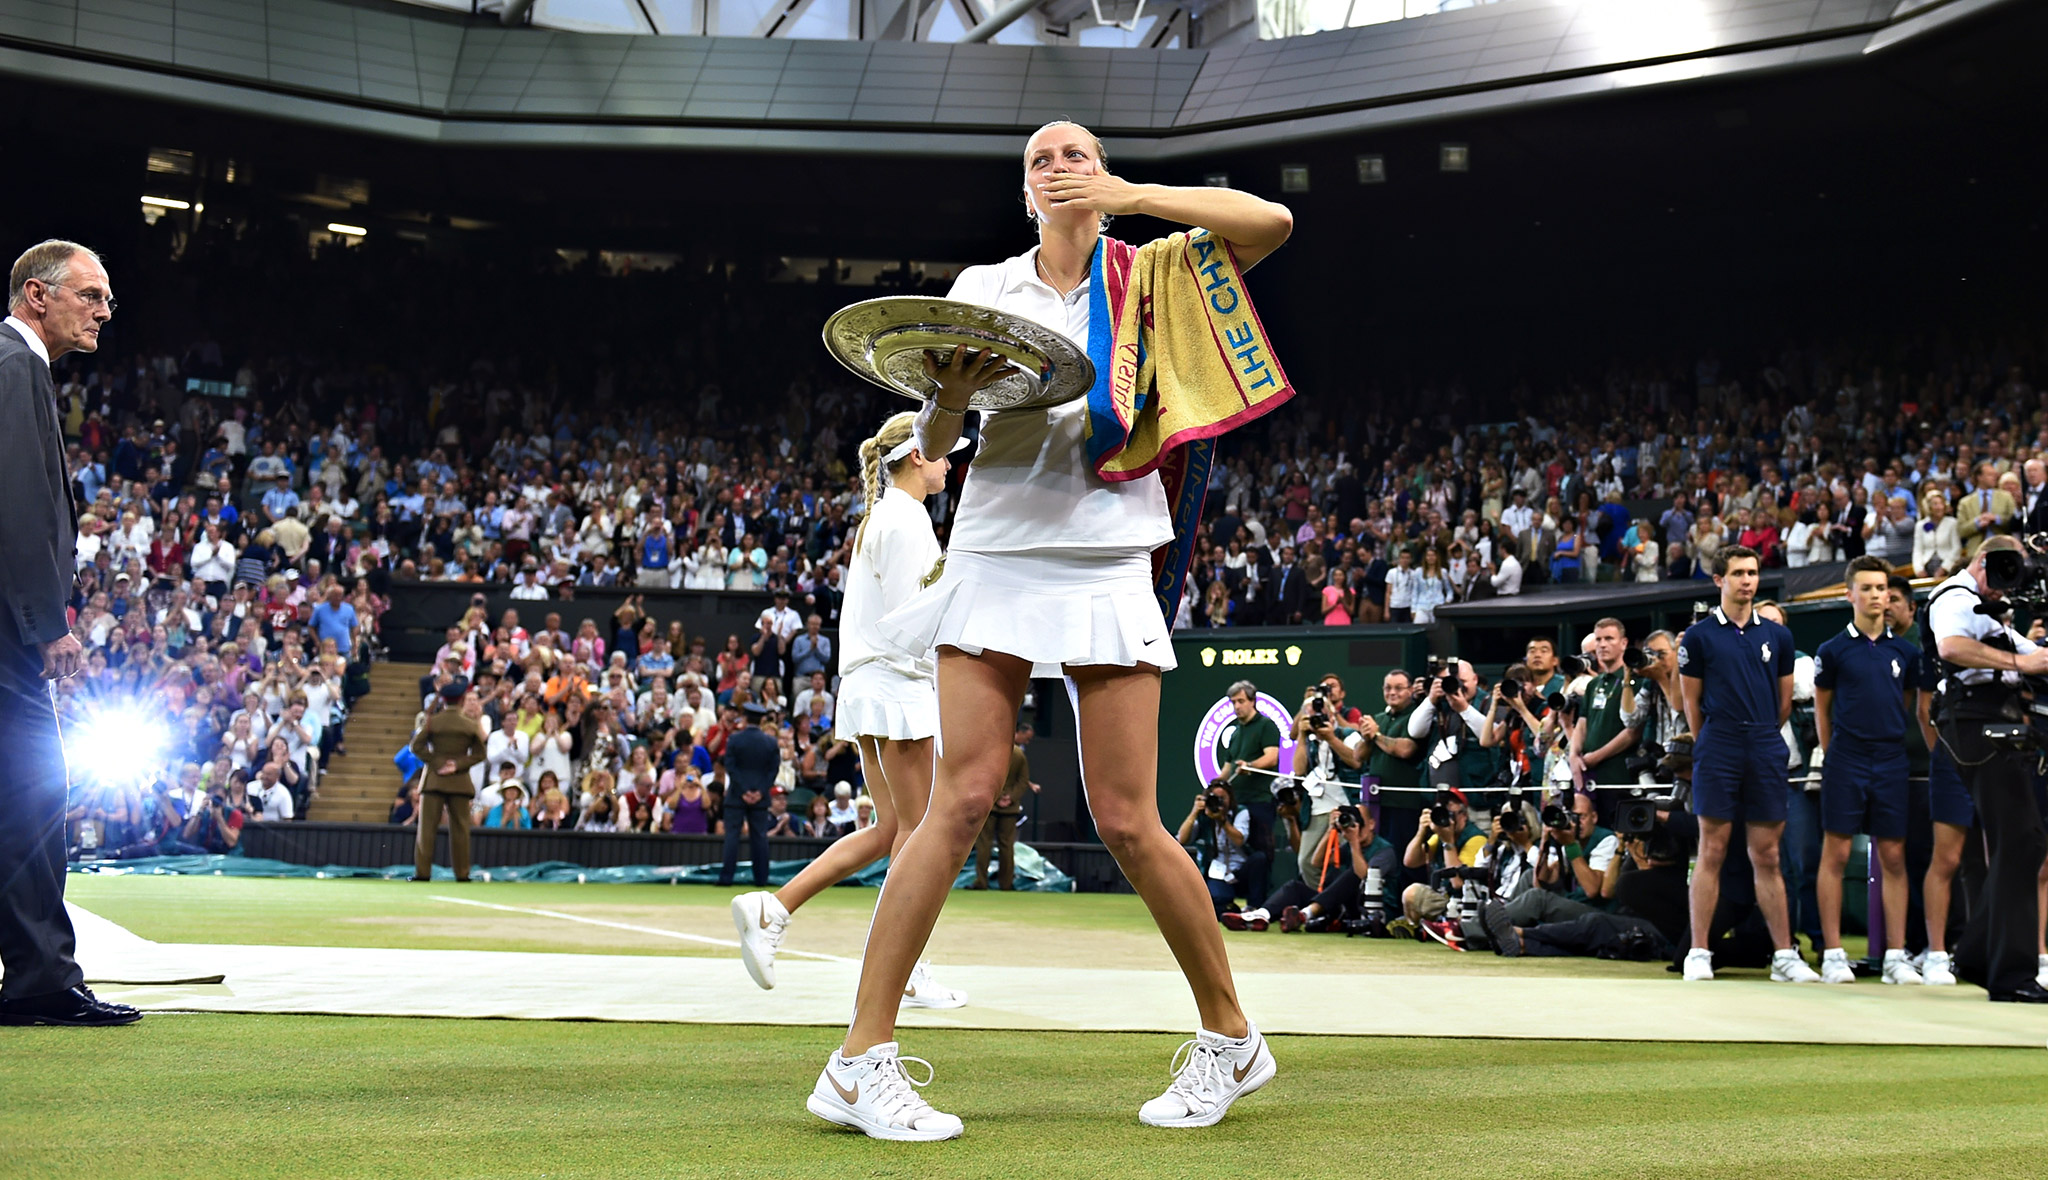 Petra Kvitova blows a kiss to the crowd as she holds the Wimbledon trophy after winning the women's final against Eugenie Bouchard. Kvitova overpowered and overwhelmed Bouchard 6-3, 6-0 in only 55 minutes.